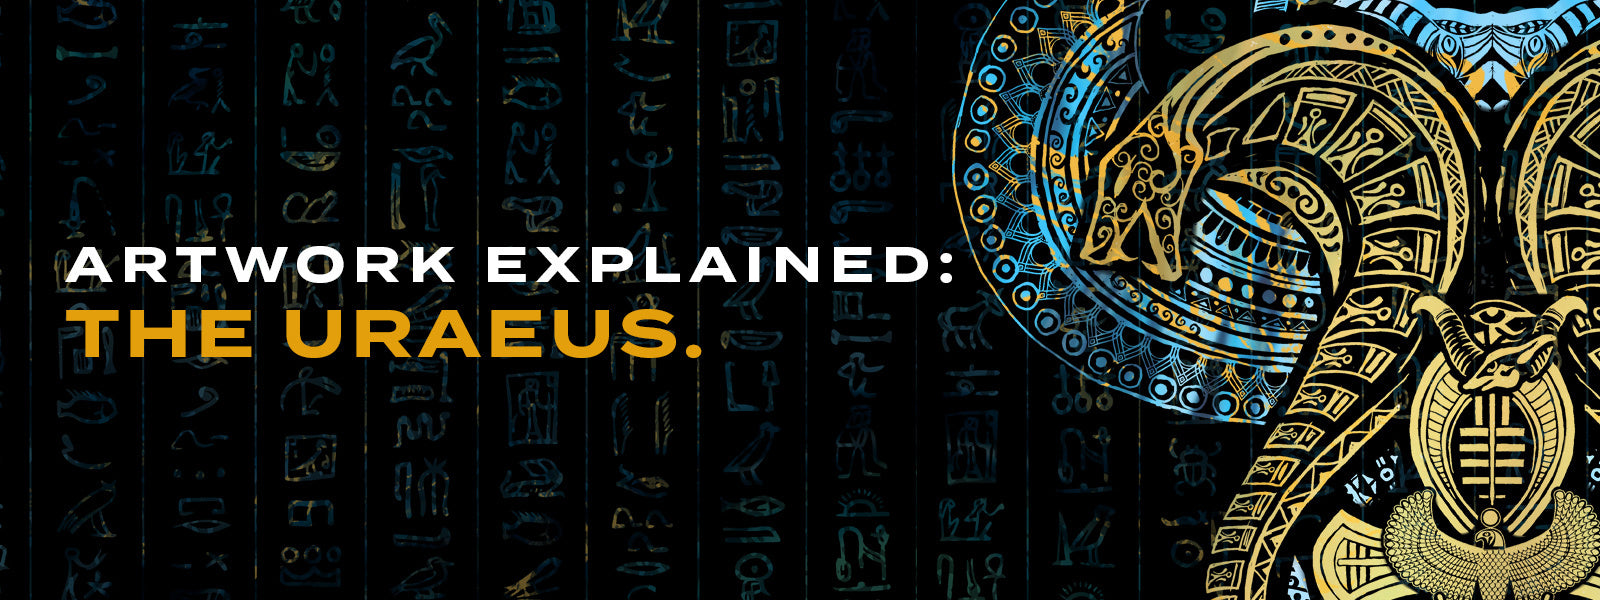 Artwork Explained: The Uraeus